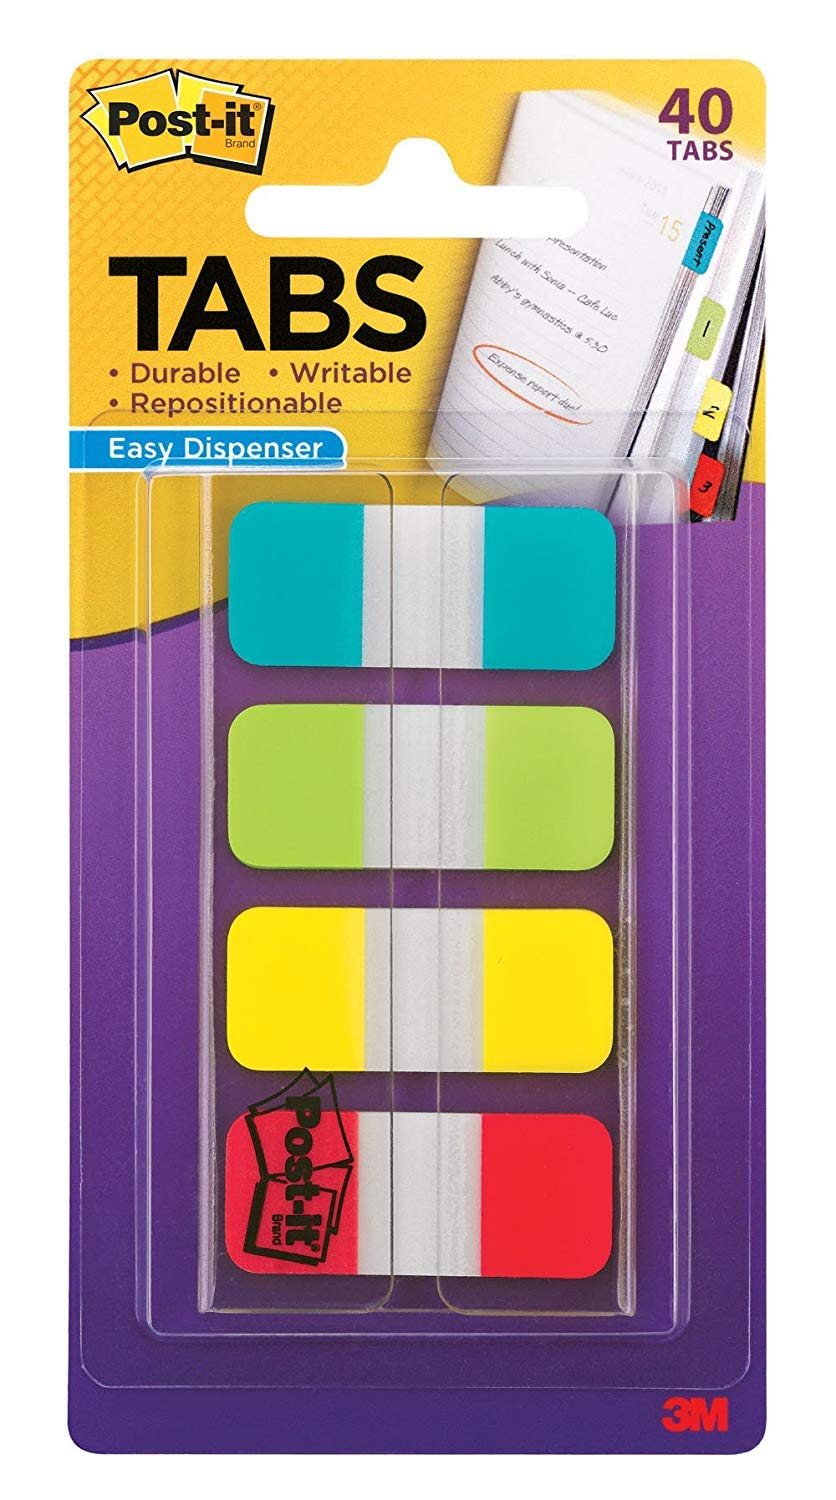 Post-it Tabs.625 in. Solid, Aqua, Lime, Yellow, Red, Durable, Writable, Repositionable, Sticks Securely, Removes Cleanly 6BLLX, 10/Color, 40/Dispenser, 4-Pack by Post-it